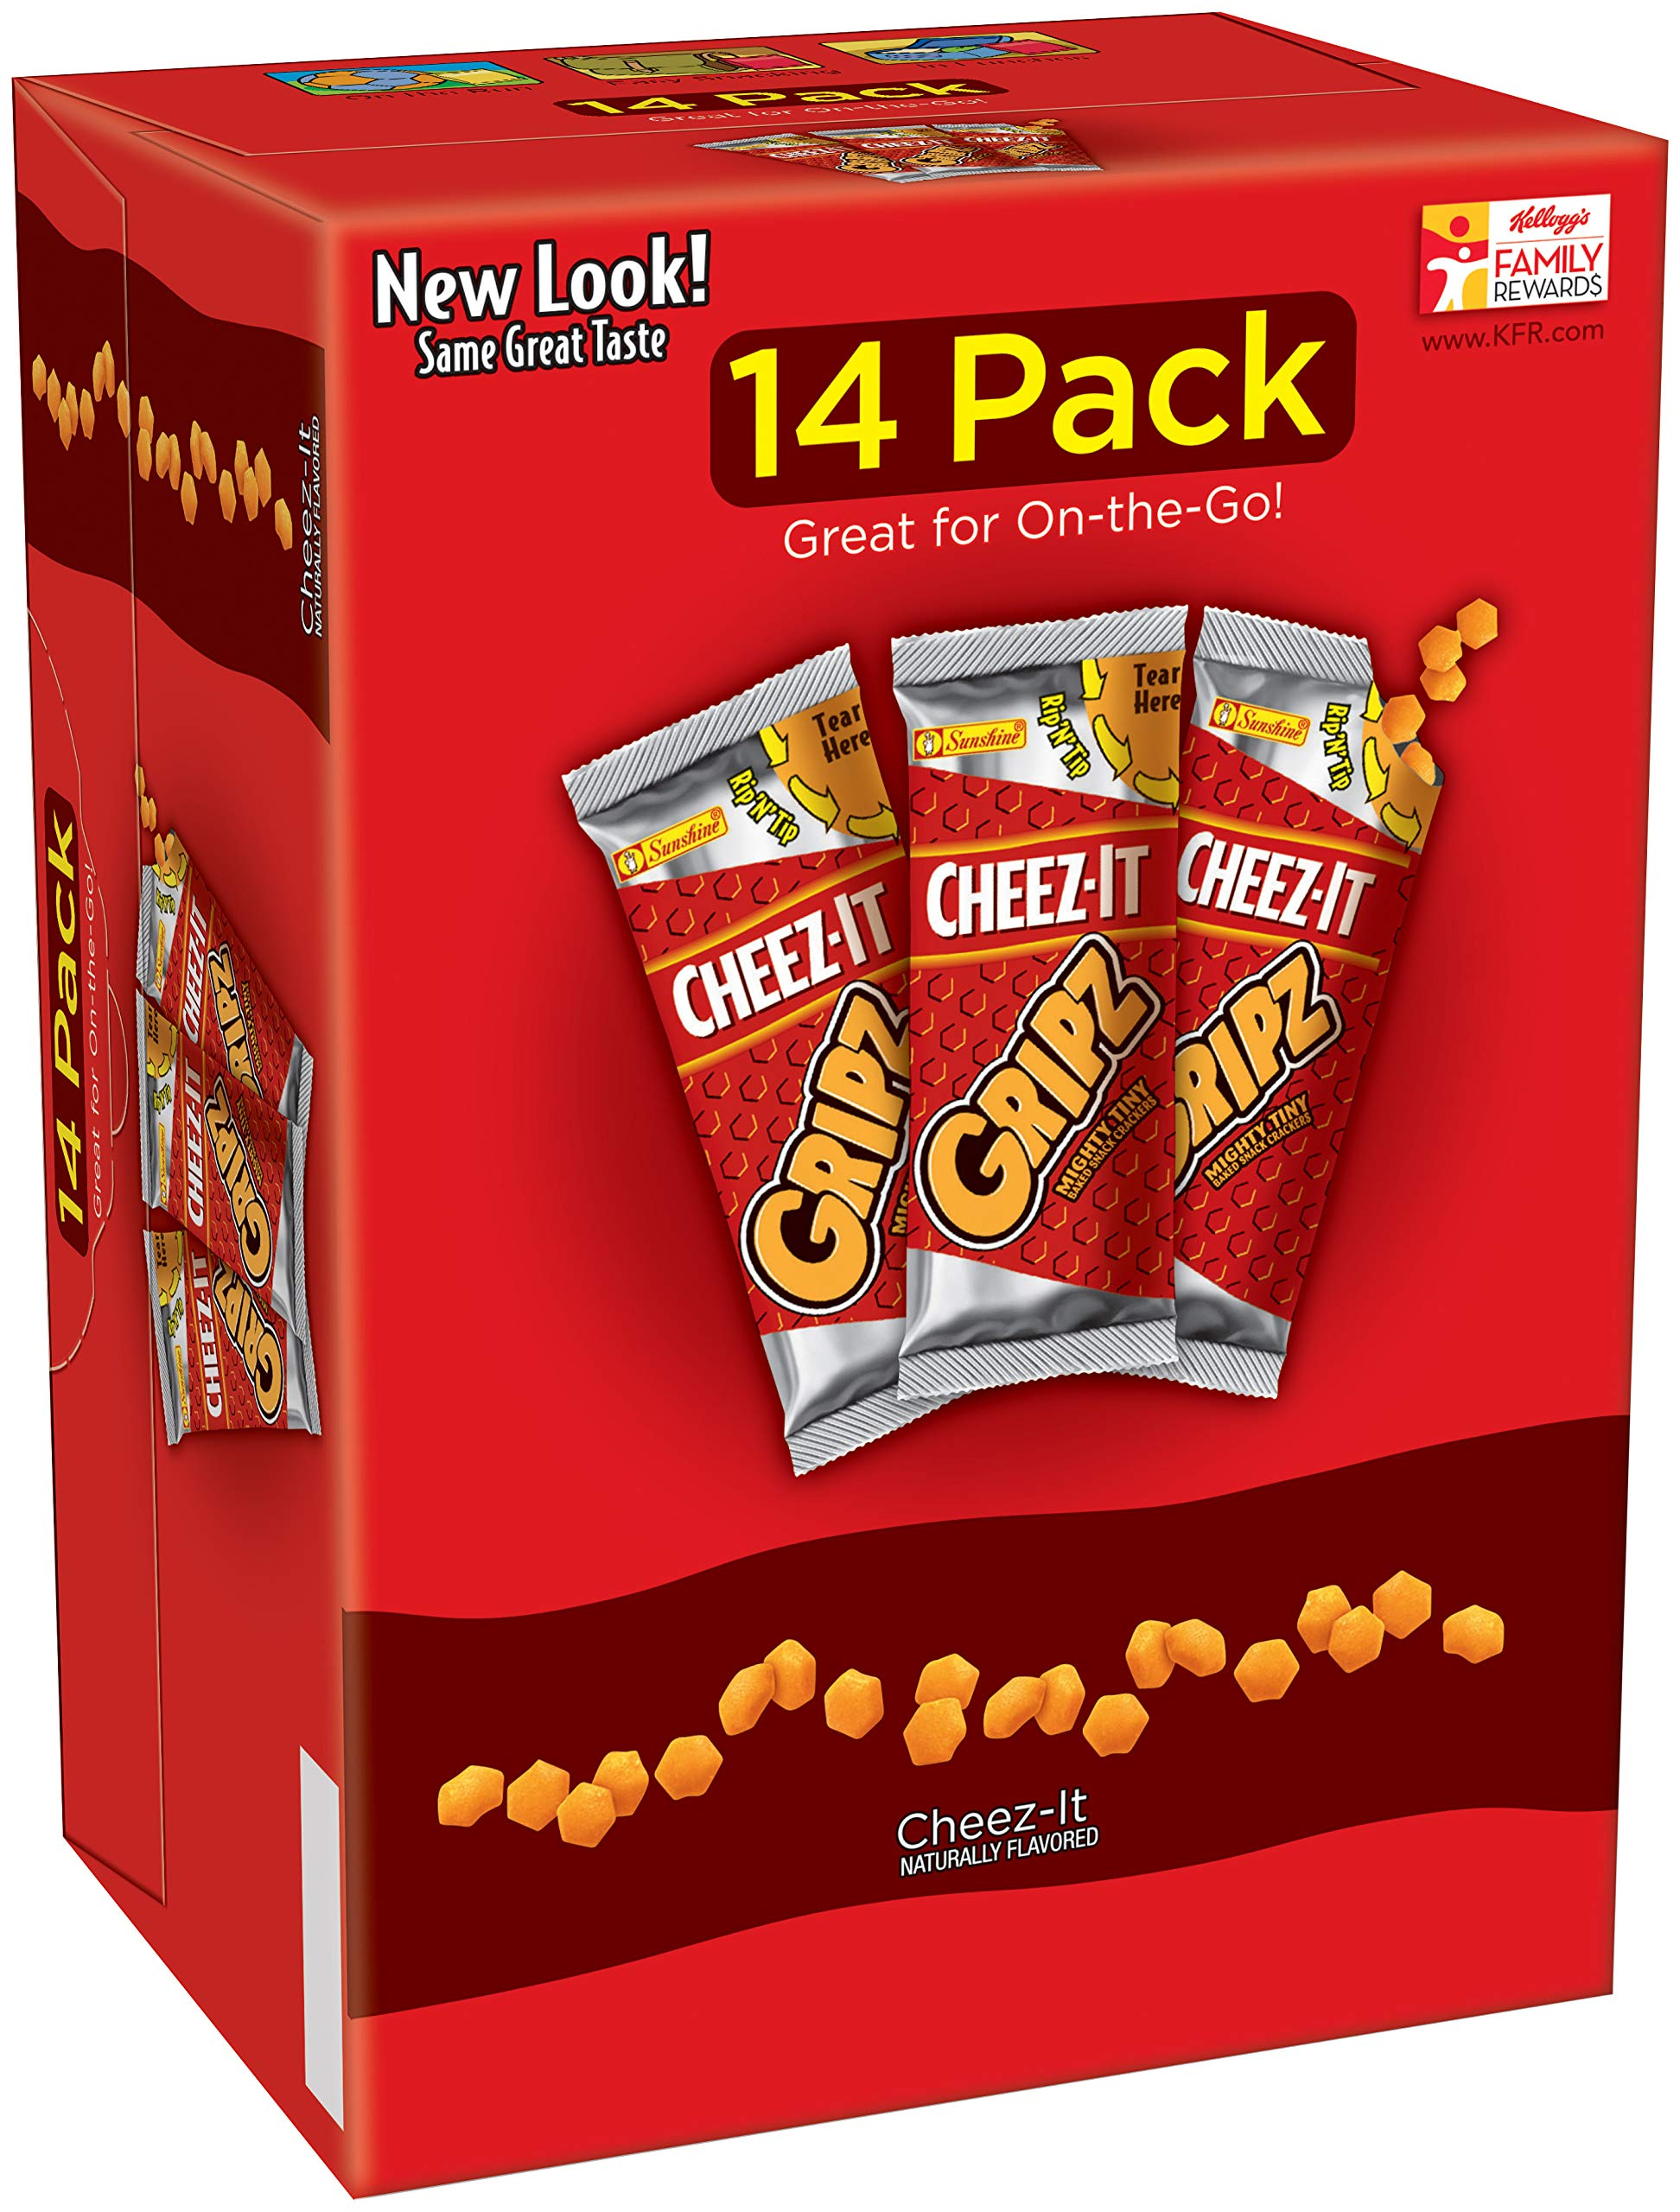 CheezIt Gripz Baked Snack Crackers 14-0.9 oz. Bags, 4 Count by Cheez-It (Image #1)